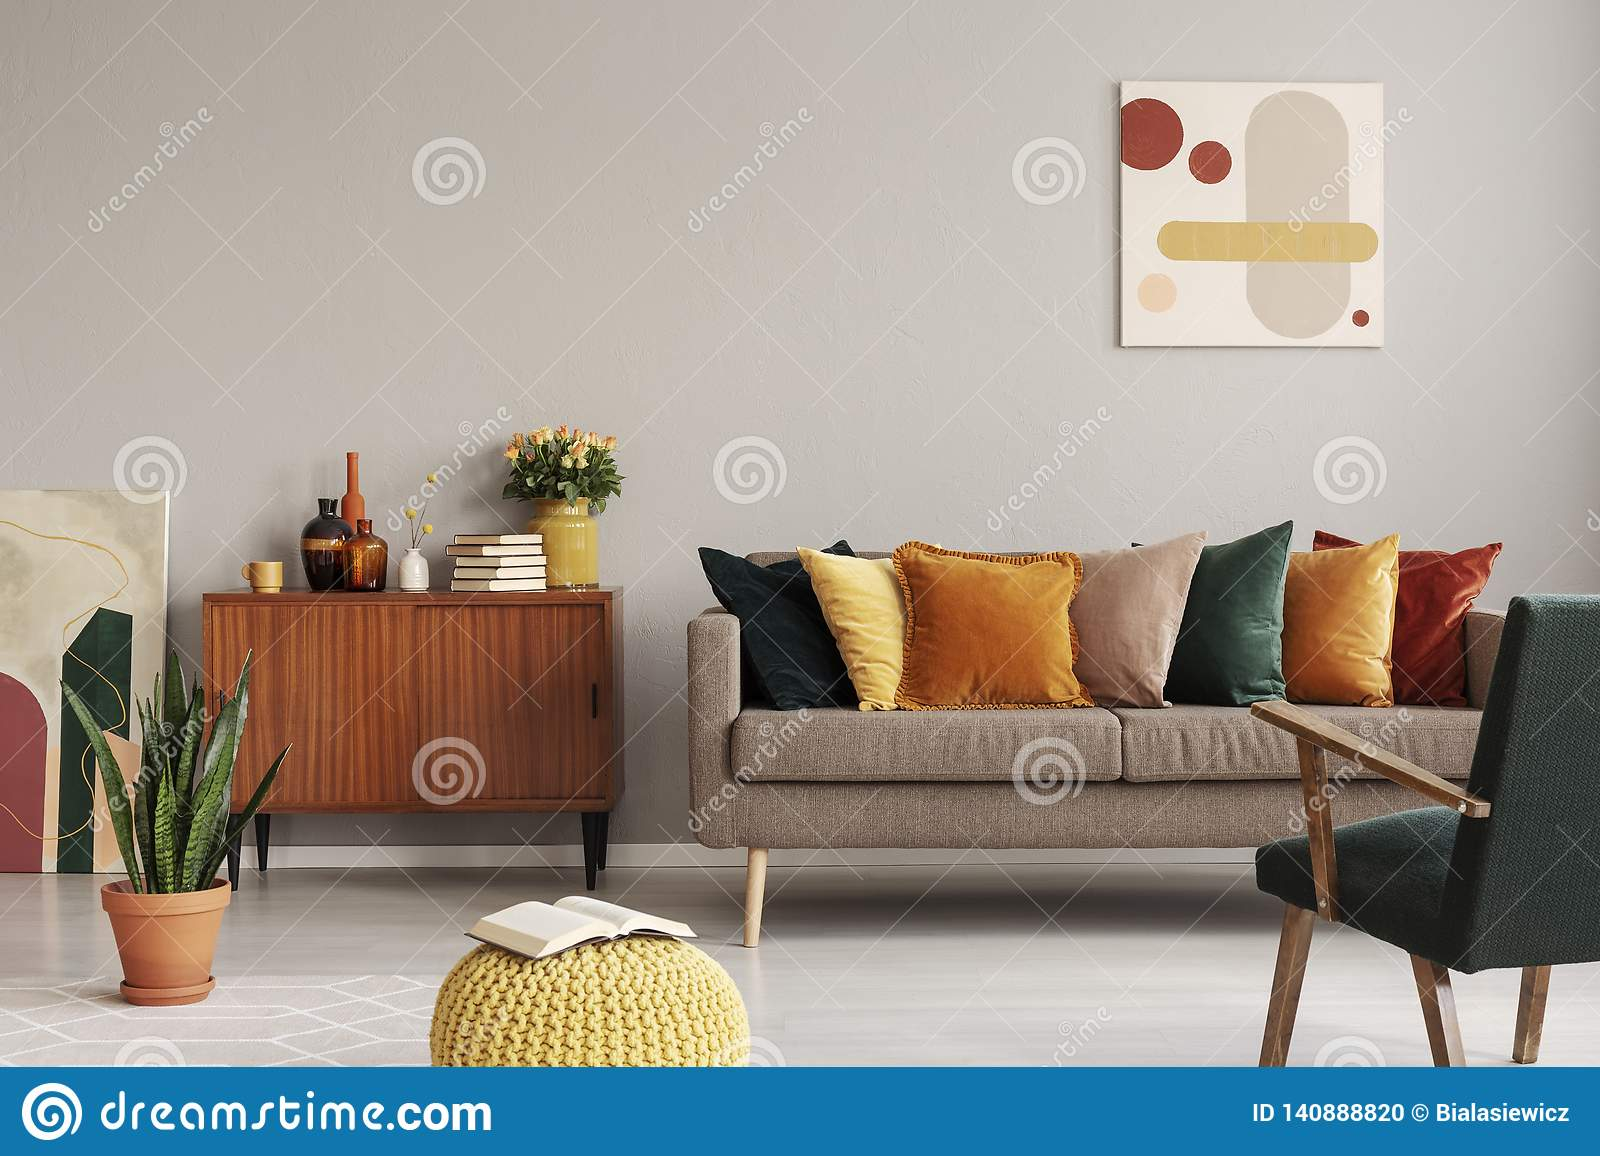 Marvelous Abstract Painting On Grey Wall Of Retro Living Room Interior Dailytribune Chair Design For Home Dailytribuneorg